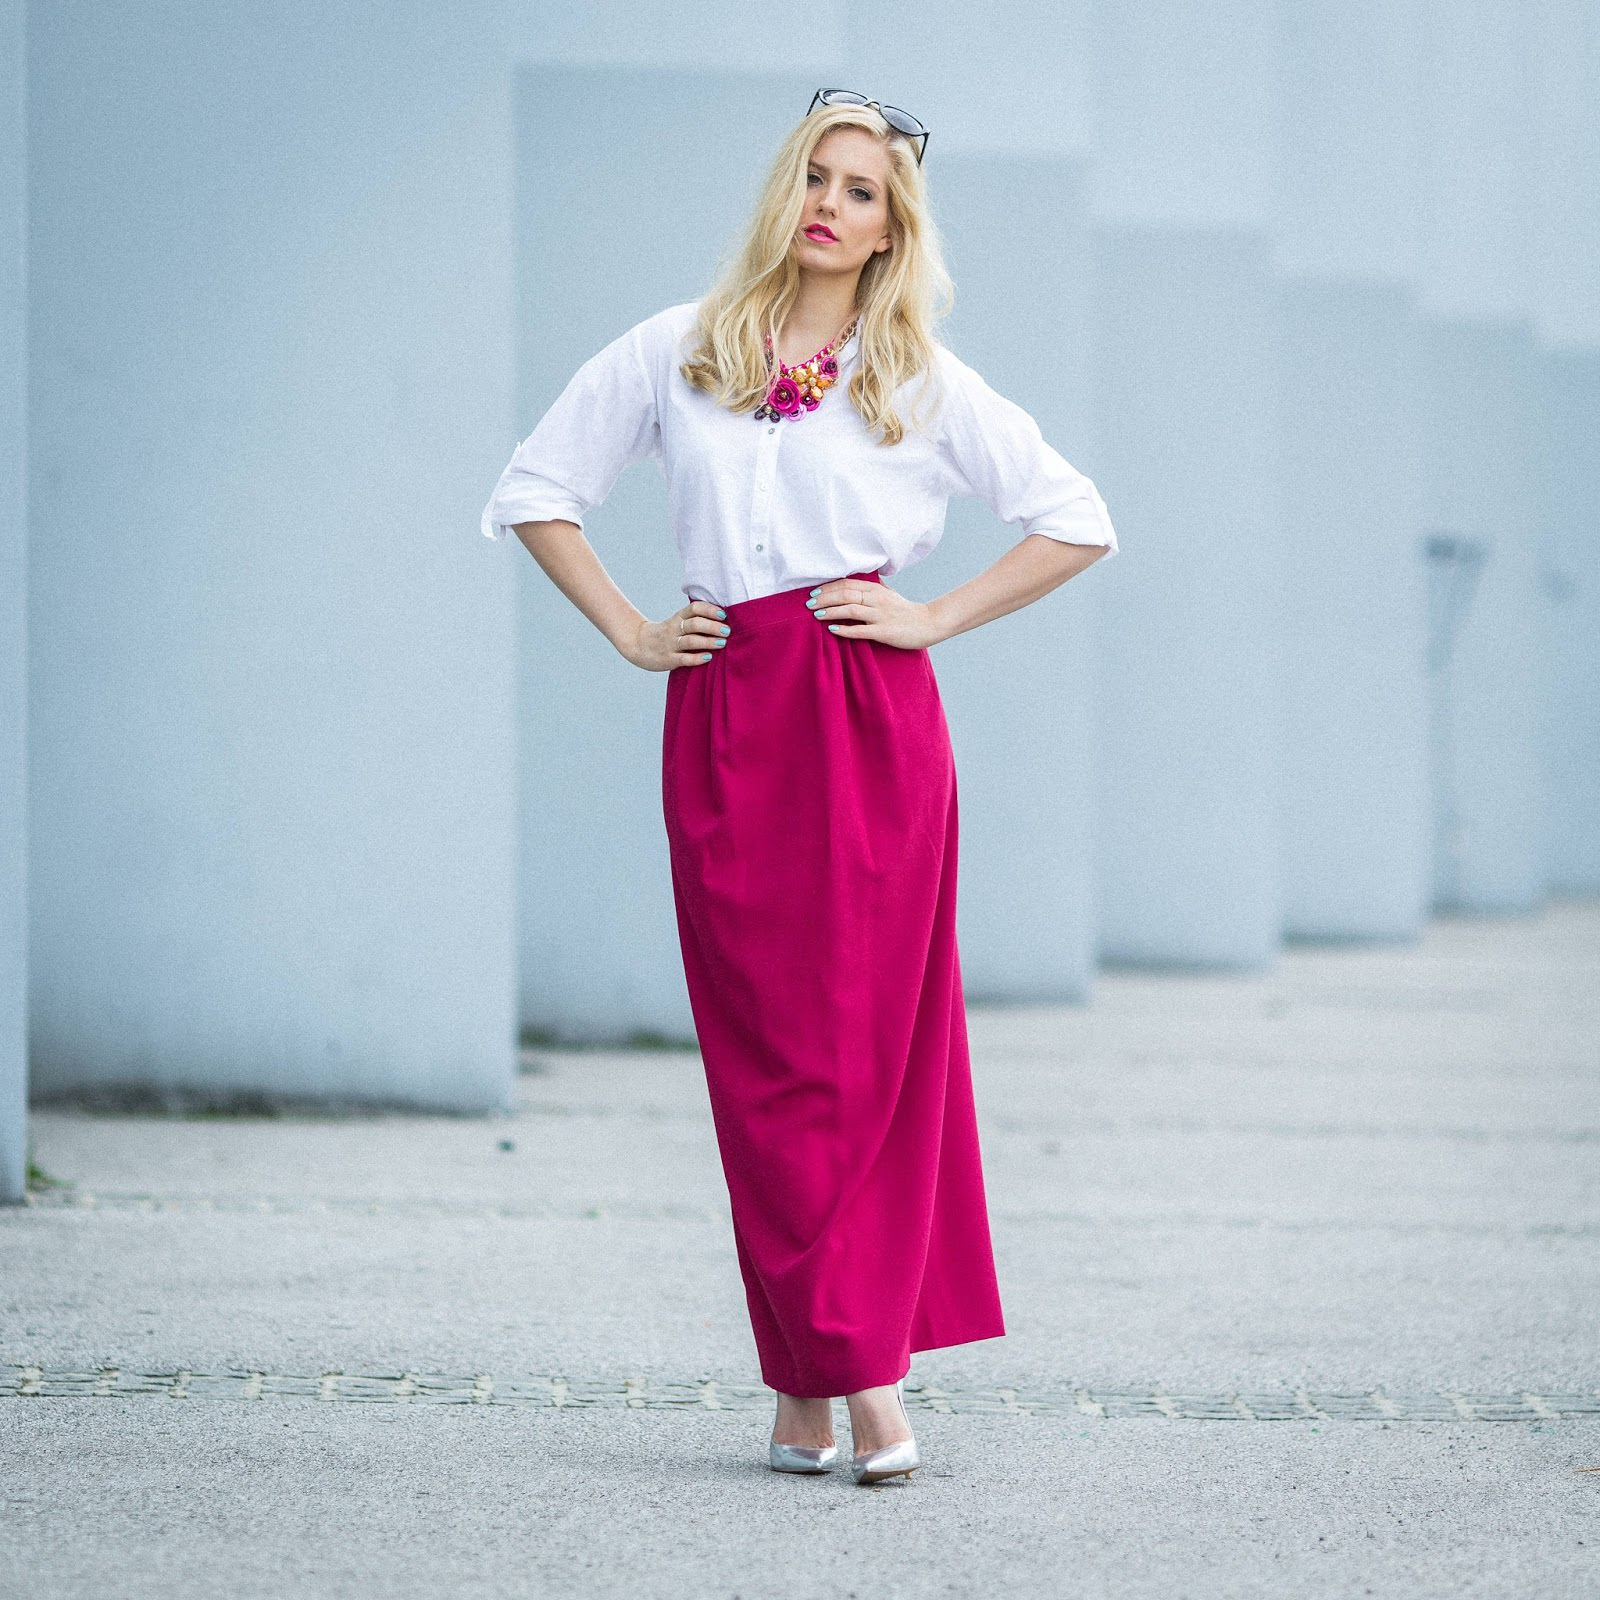 maxi skirt fashion blogger outfit